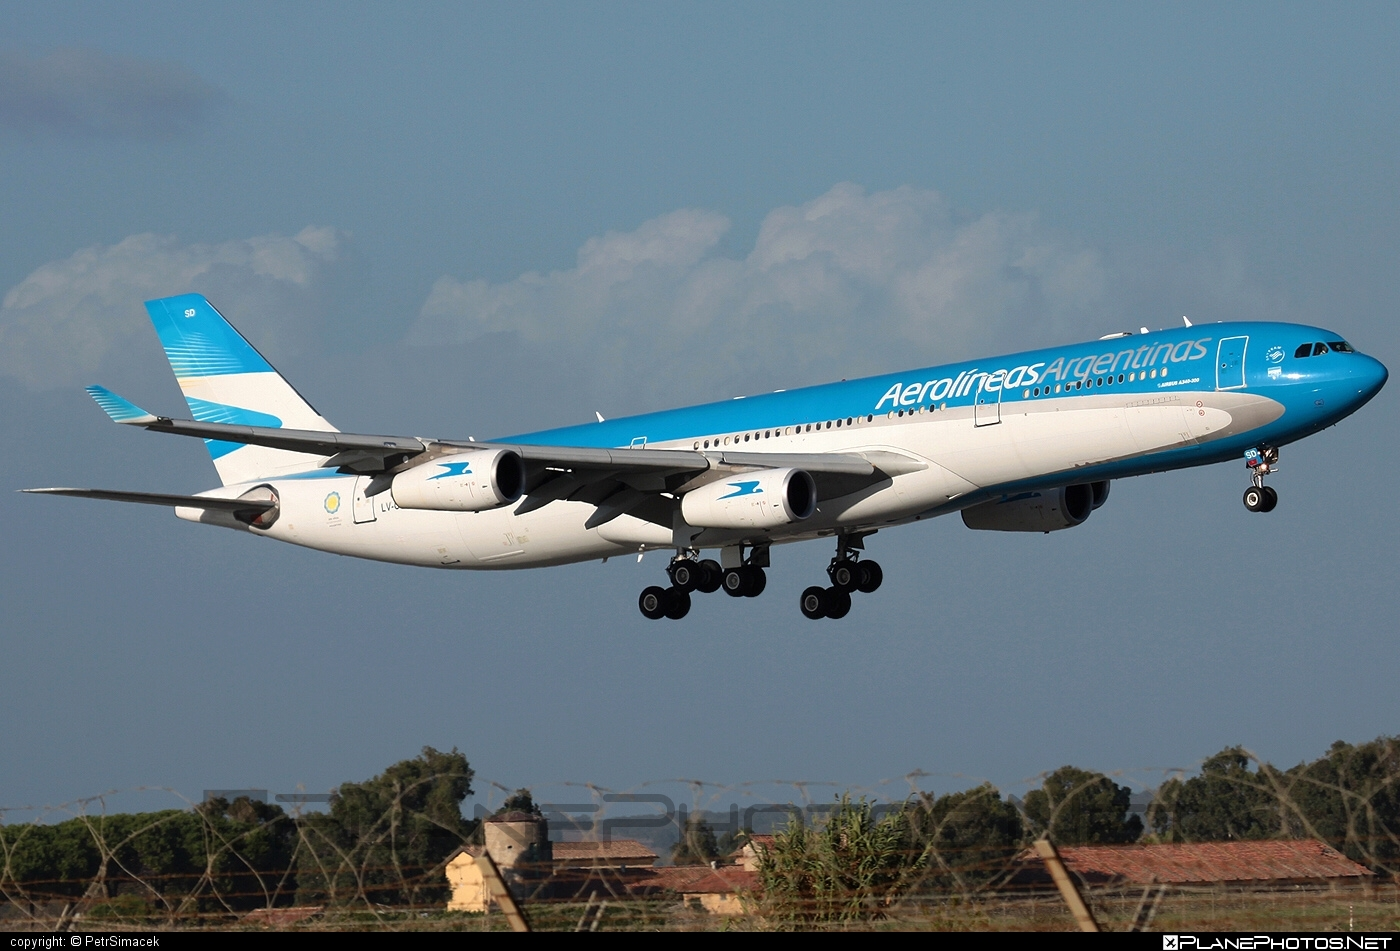 Airbus A340-313 - LV-CSD operated by Aerolíneas Argentinas #a340 #a340family #airbus #airbus340